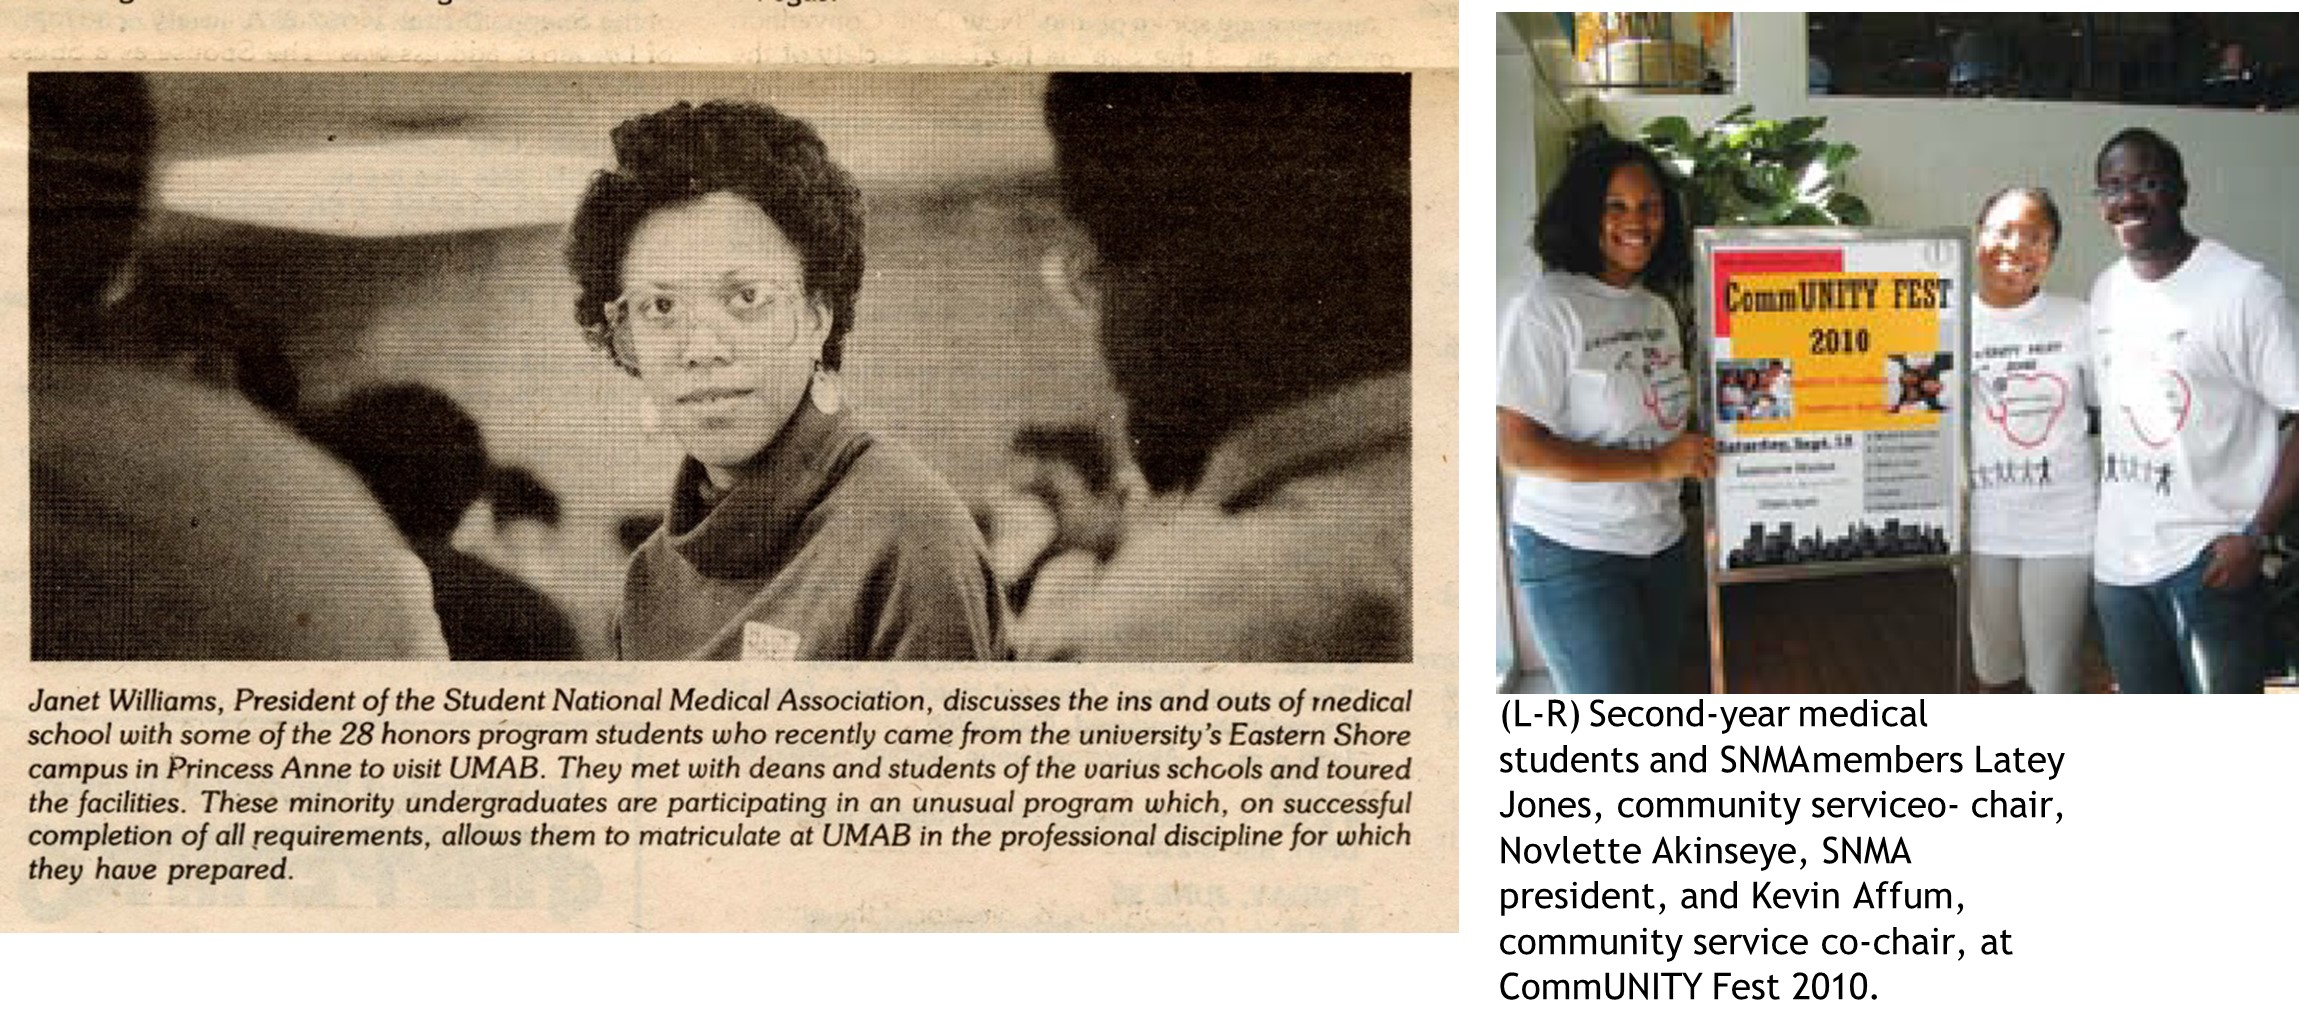 Two newspaper clippings, one on left in black and white, photograph of woman looking at camera; image on right in color, group of students standing around a poster